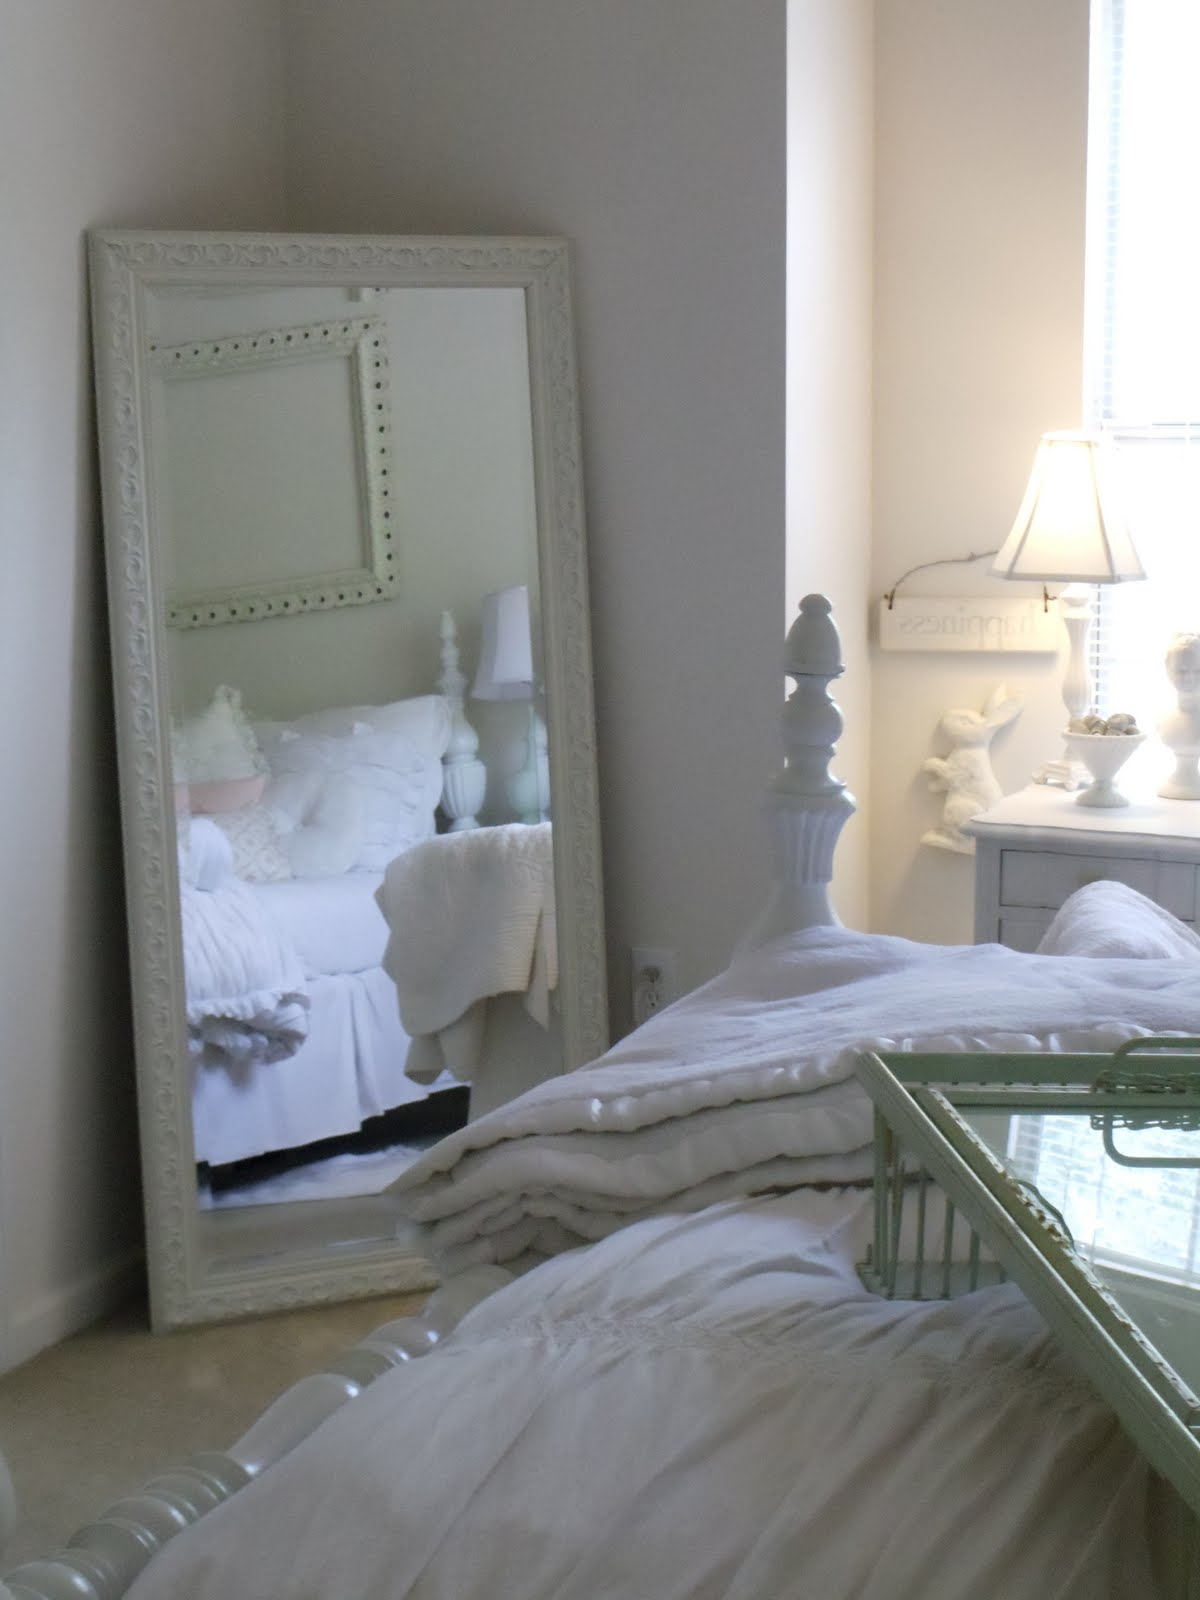 Home Goods Wall Mirrors Within Best And Newest Diy Round Set Designs Ideas Sri Pictures Hallway Lanka Bedroom (View 18 of 20)